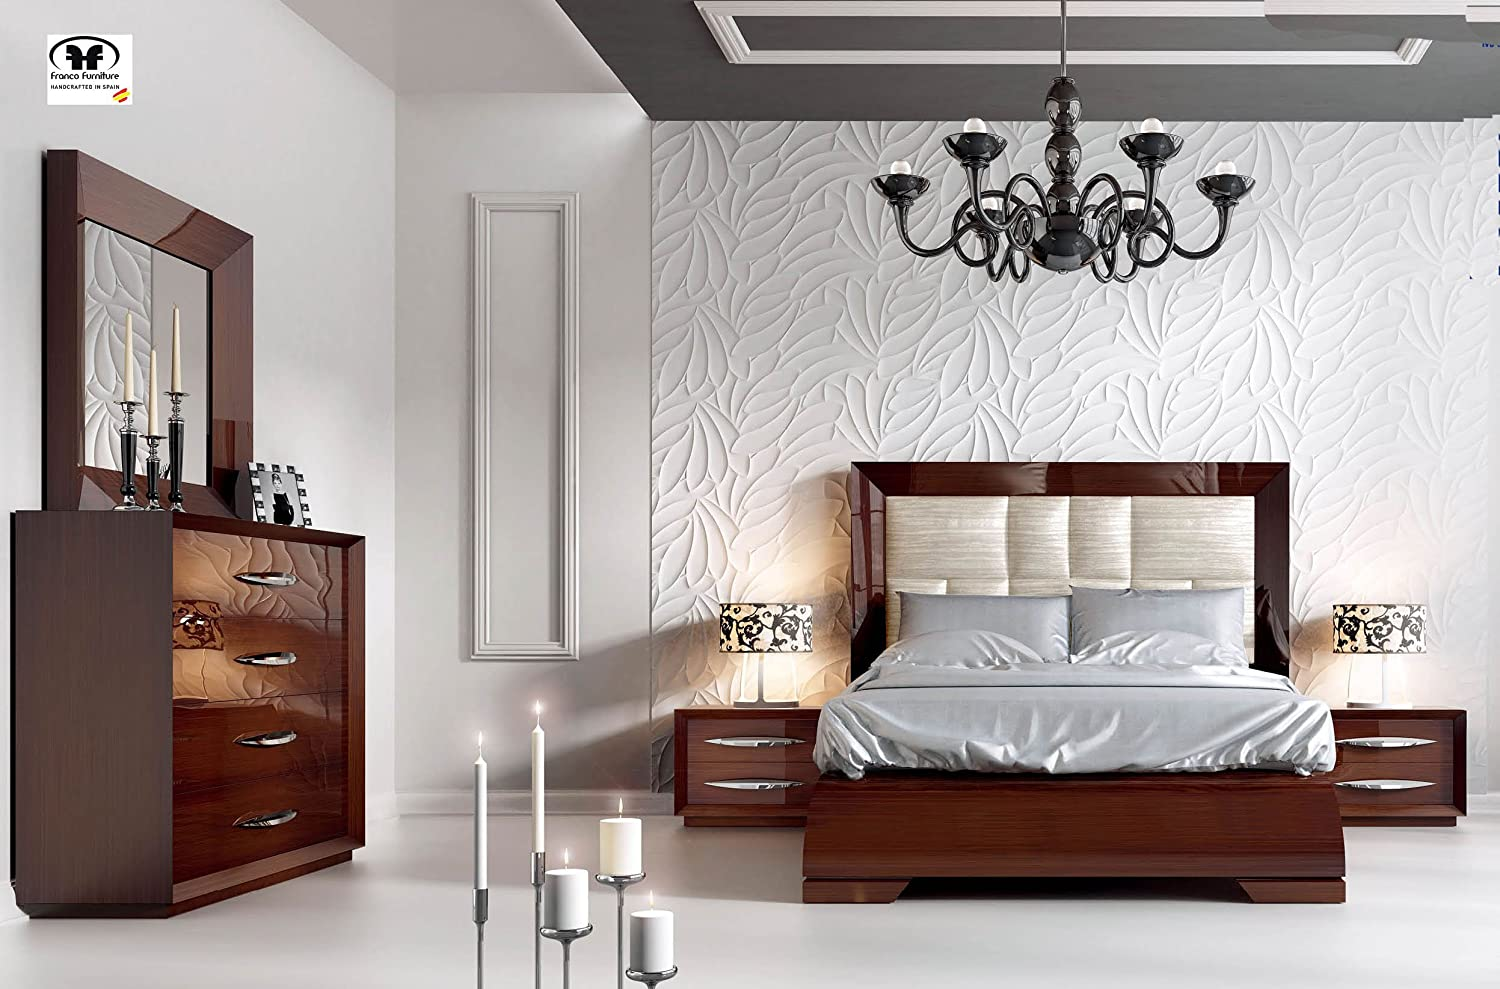 193a516b5ea Amazon.com  Modern Contemporary King or Queen Size Bed Set Made in Spain  Carmen by ESF (King)  Kitchen   Dining